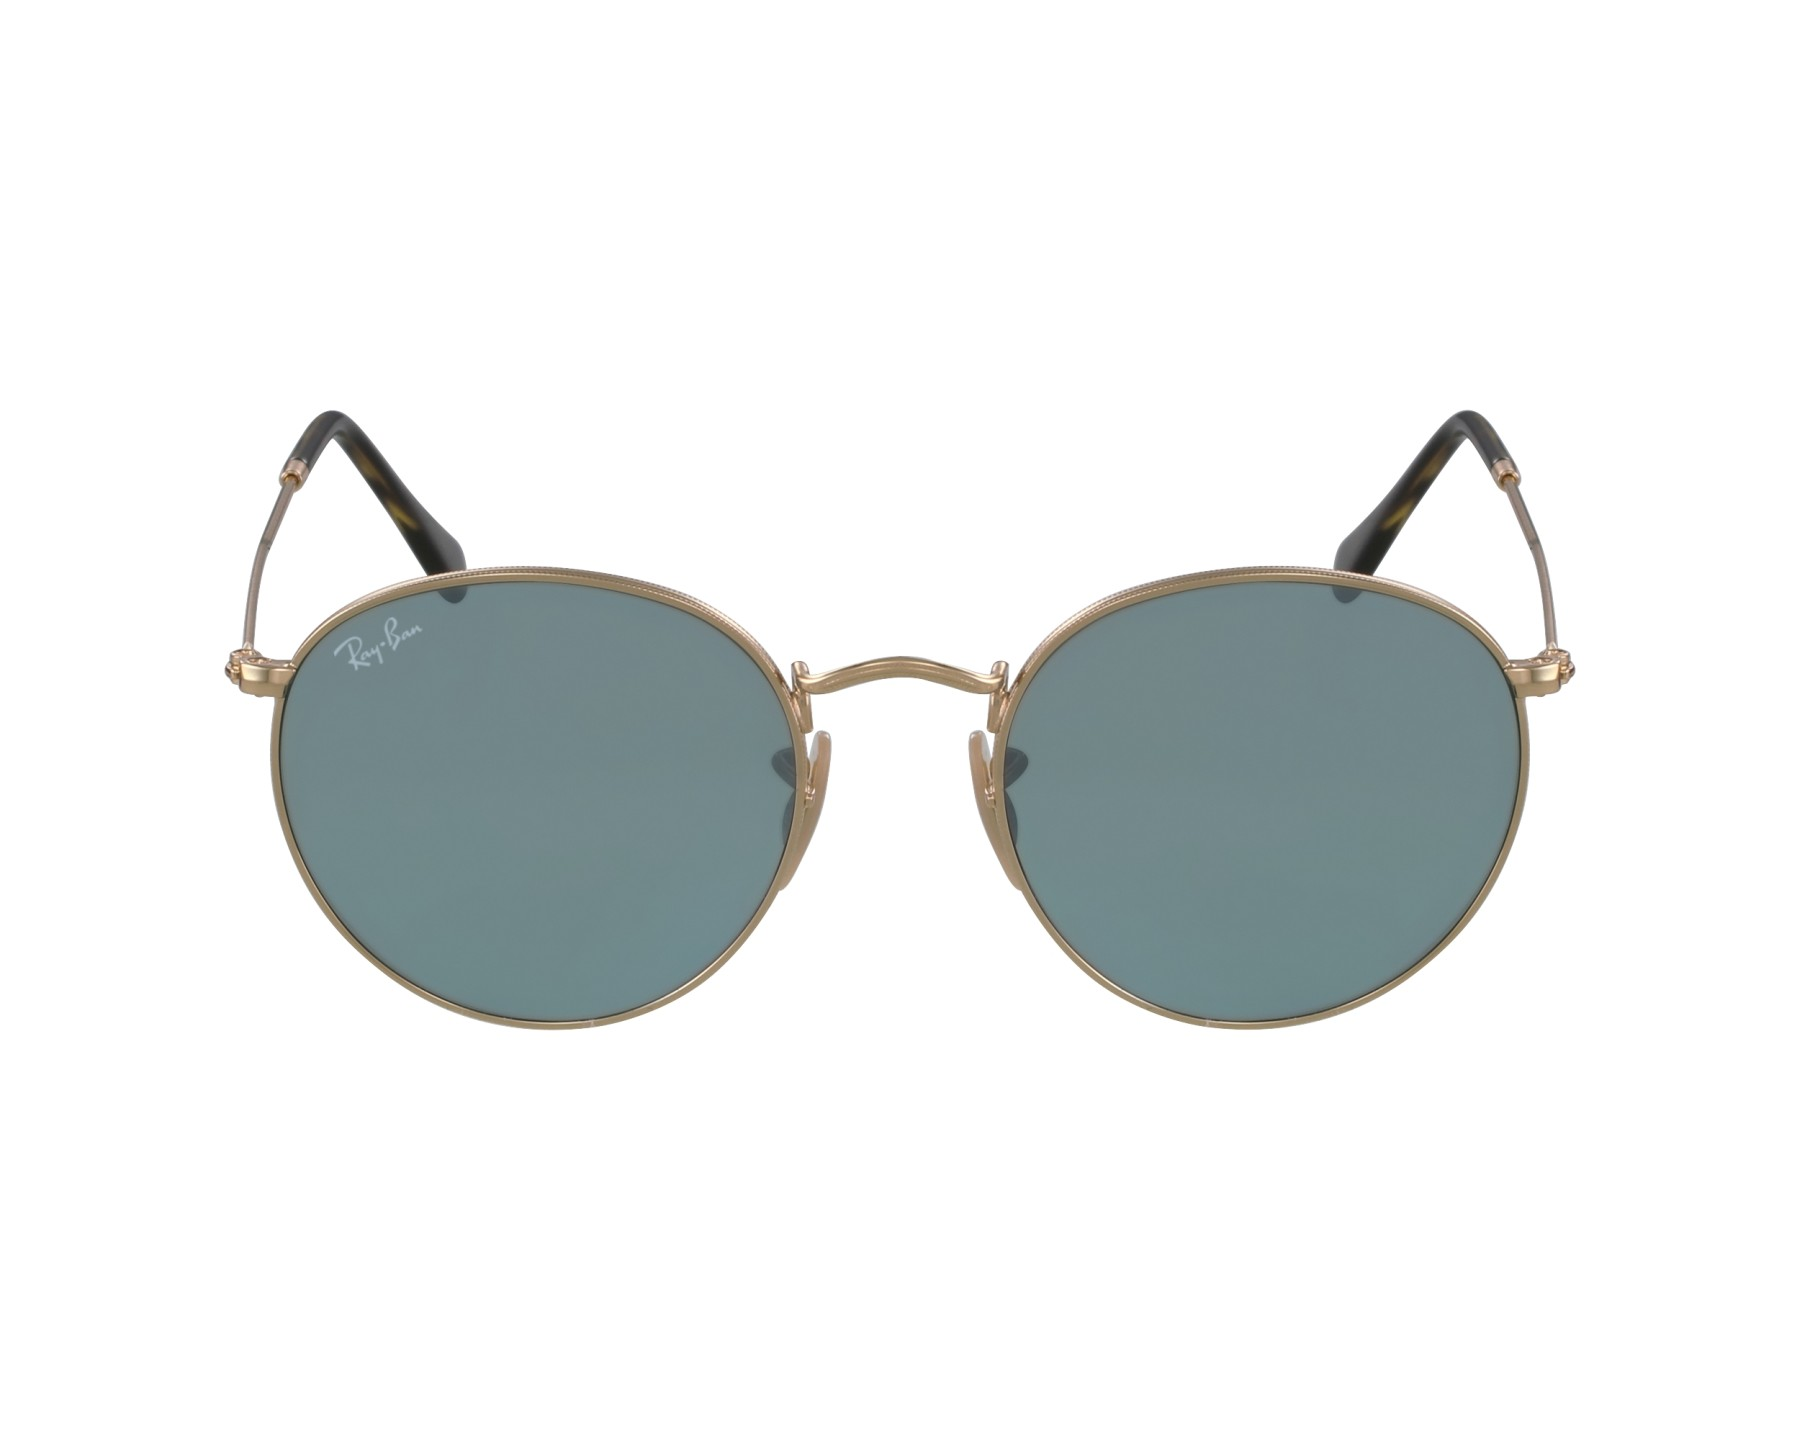 4e397c81a2 Sunglasses Ray-Ban RB-3447-N 001 30 - Gold profile view